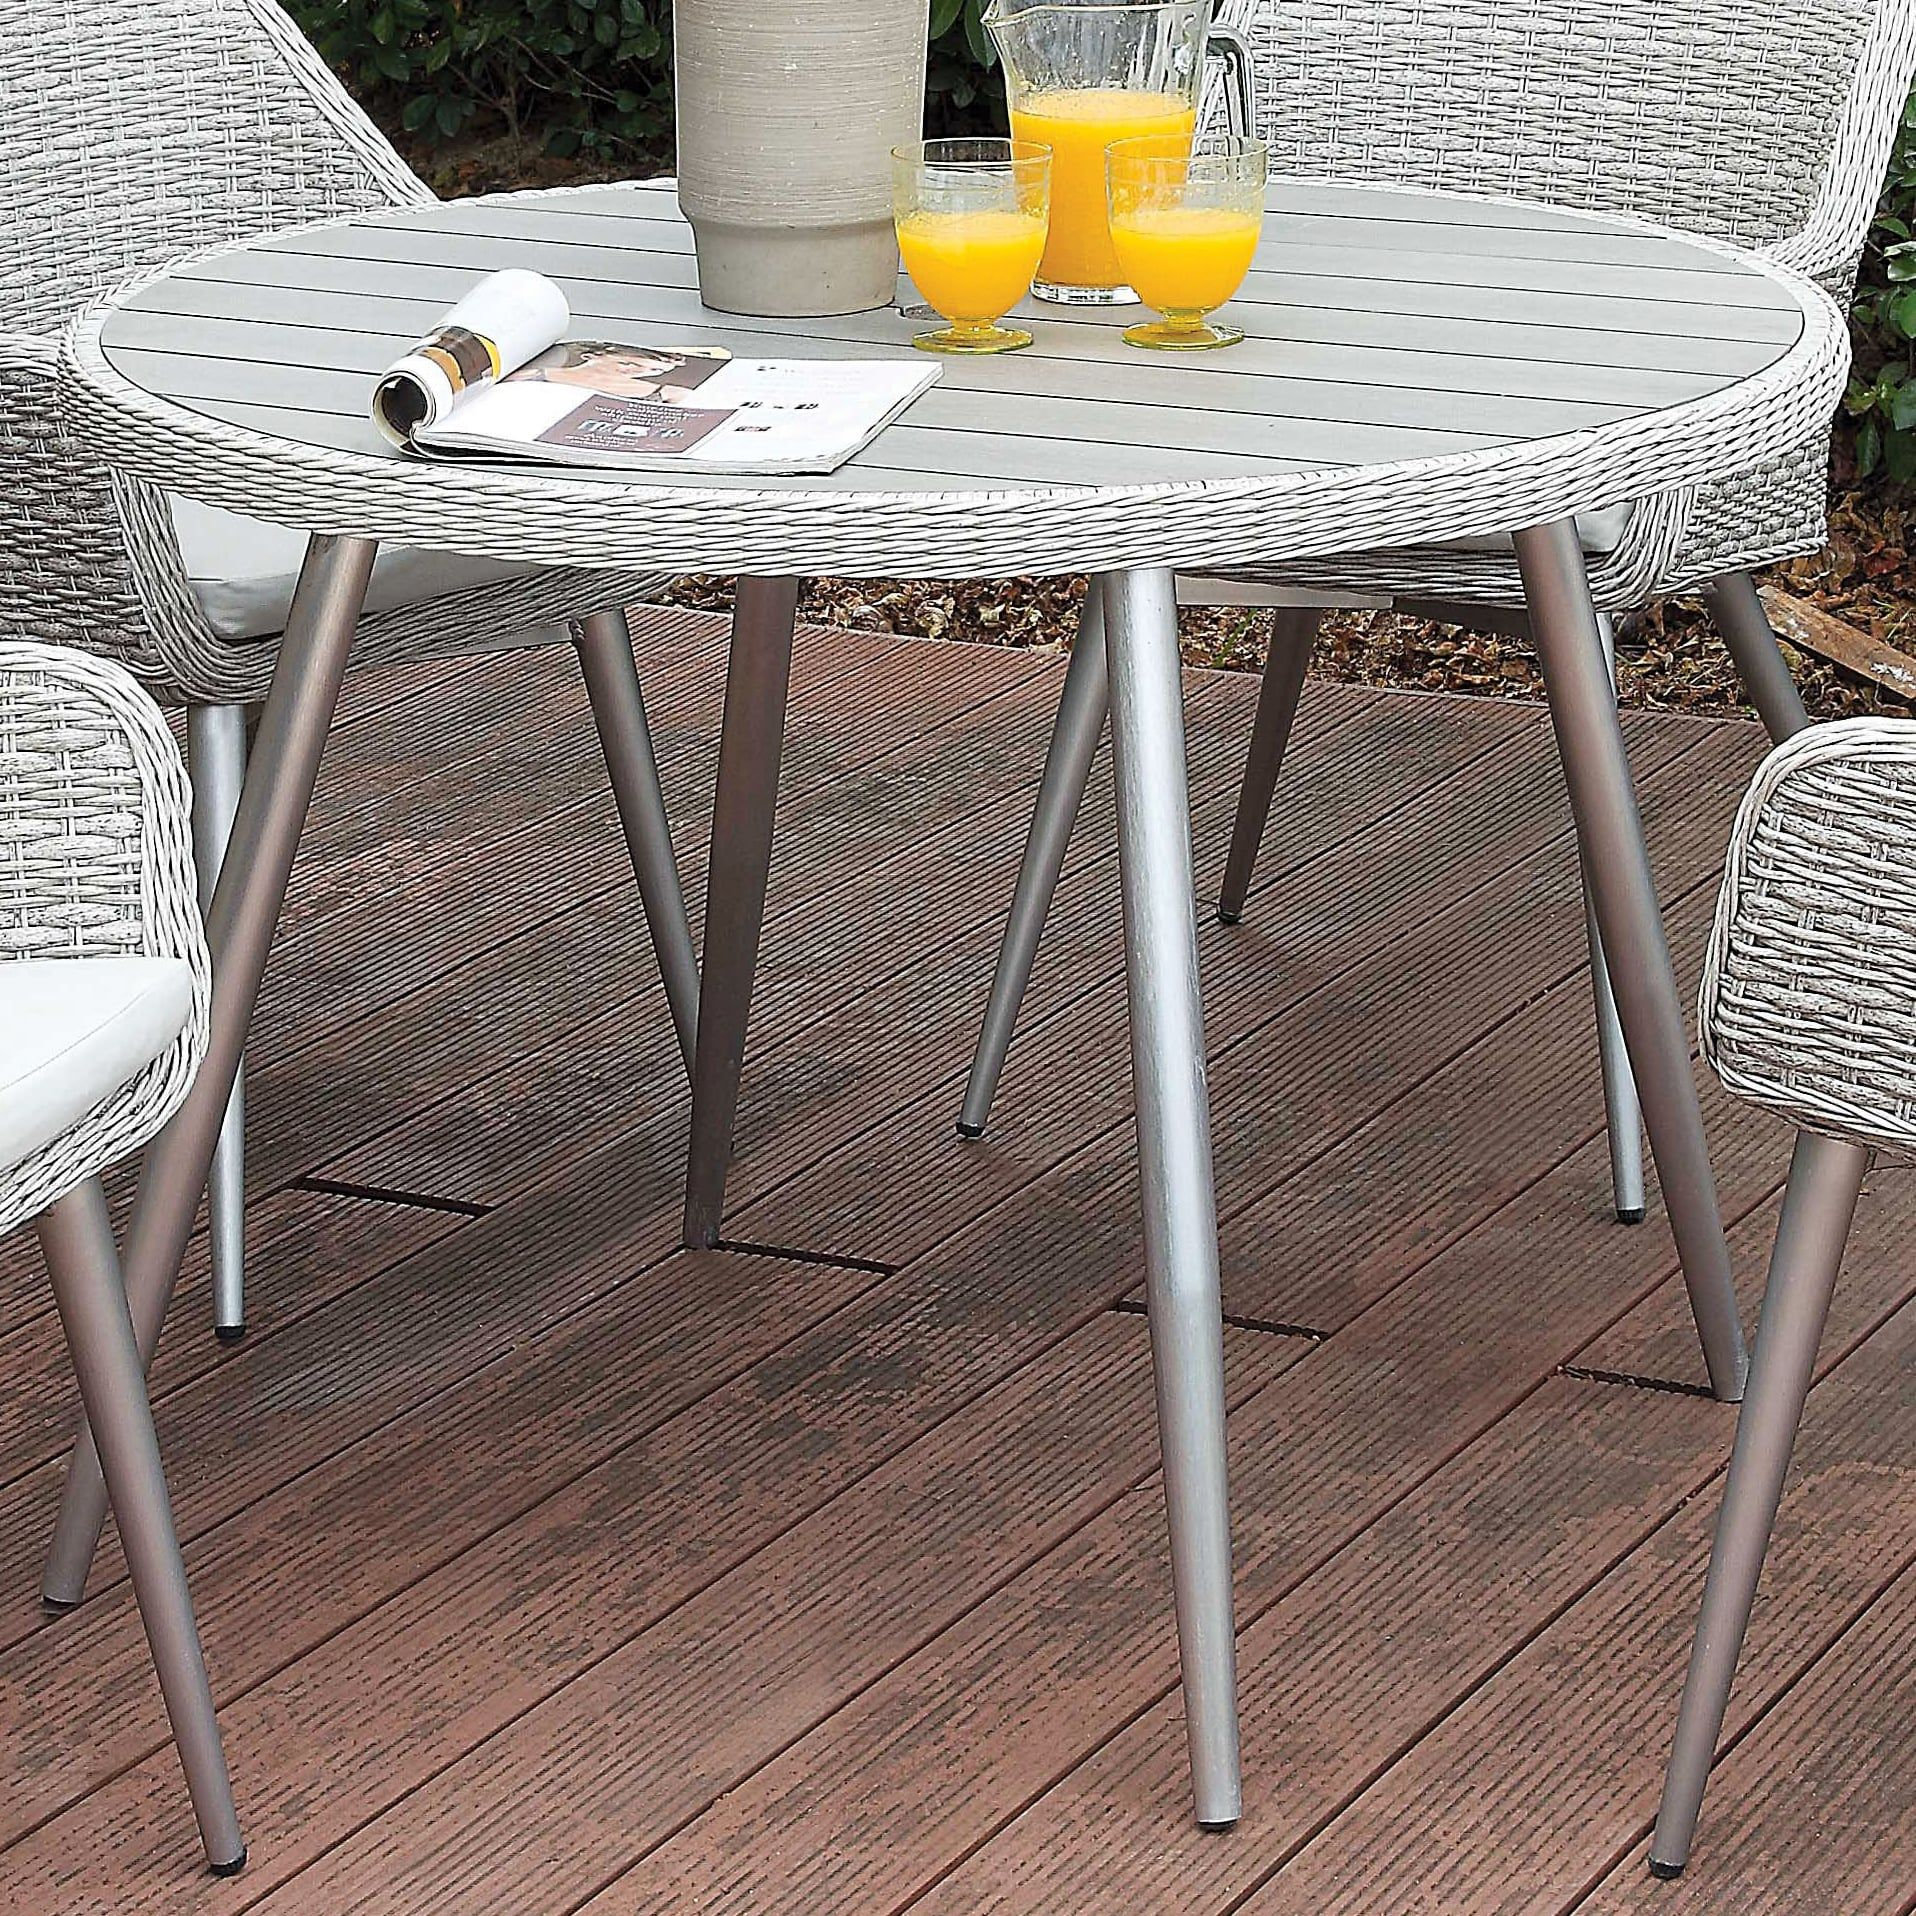 grey outdoor dining set furniture outdoor ikea furniture of america sunni contemporary plank style aluminum grey outdoor round dining table silver